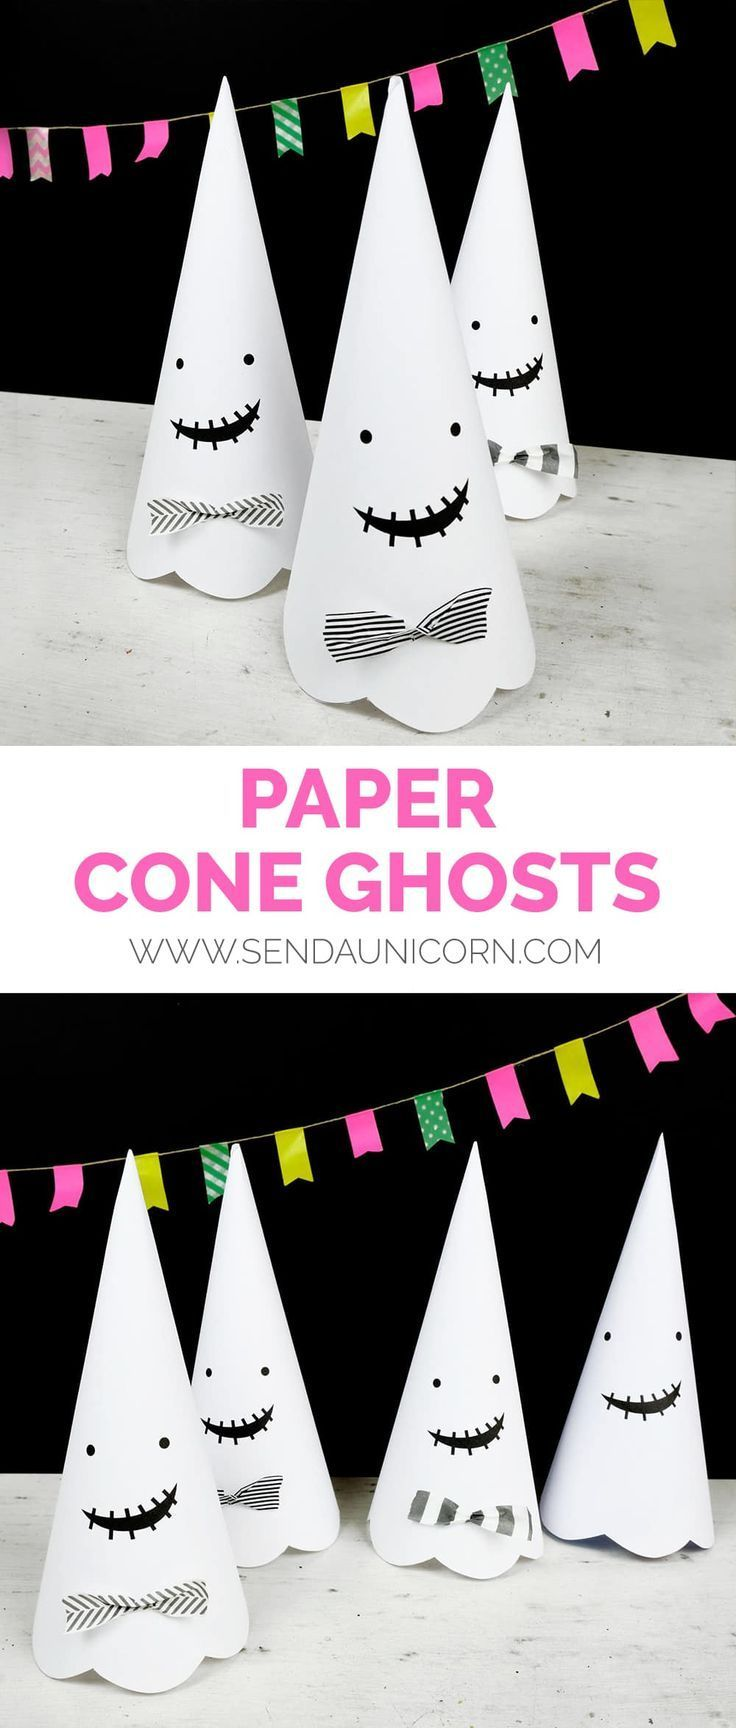 PAPER CONE GHOST PRINTABLE is part of Halloween craft activities, Halloween decorations for kids, Easy halloween crafts, Halloween paper, Halloween crafts for kids, Fun halloween games - Follow us on Instagram for more fun ideas for kids! With our hectic October schedule, it's always a relief to find a cute Halloween printable that can be printed and put together in a snap like these Paper Cone Ghost Printables! Ghouls and ghosties are a sign of the season, and these darling paper cone ghosts are …